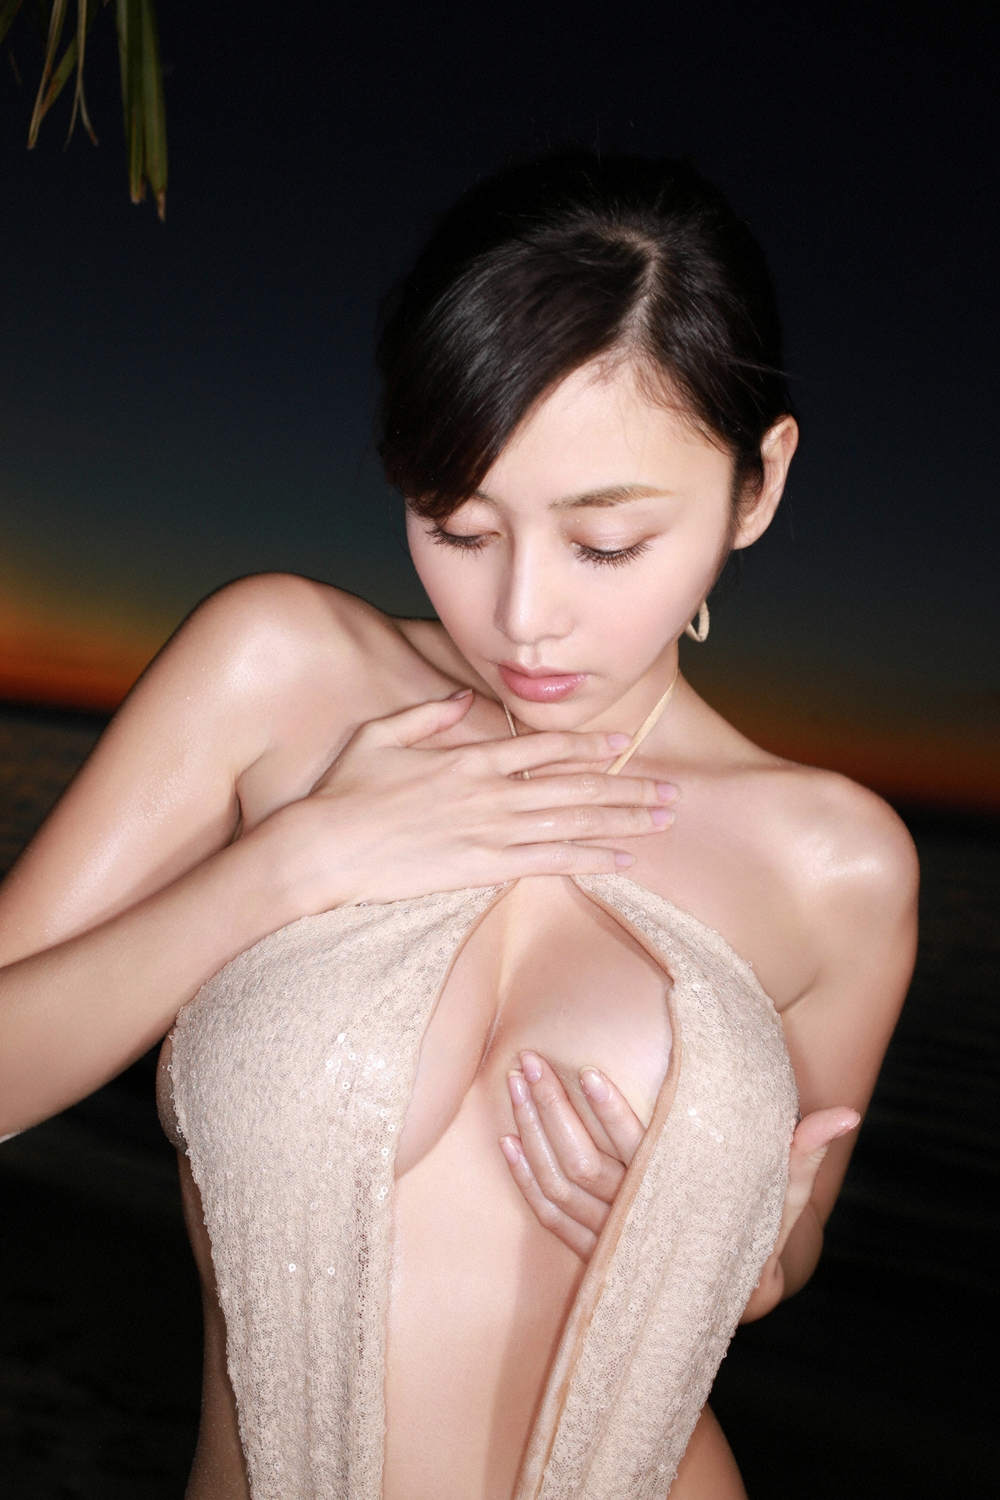 杉原杏璃 Anri Sugihara YS Web Vol 655 Pictures 66